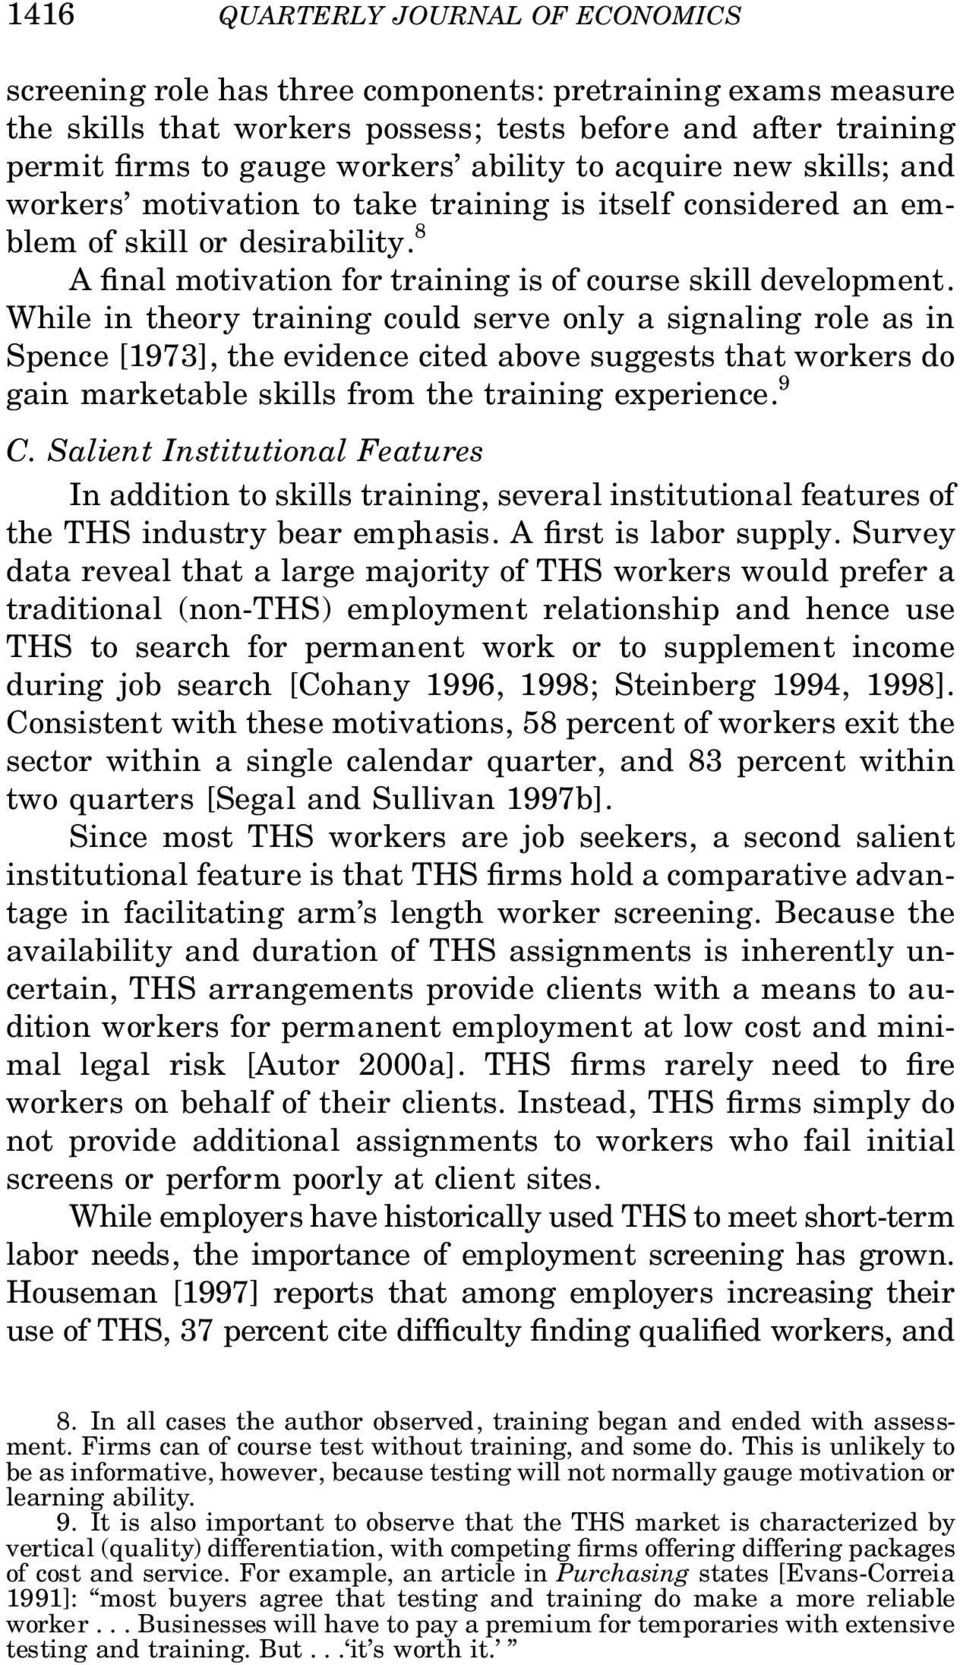 While in theory training could serve only a signaling role as in Spence [1973], the evidence cited above suggests that workers do gain marketable skills from the training experience. 9 C.